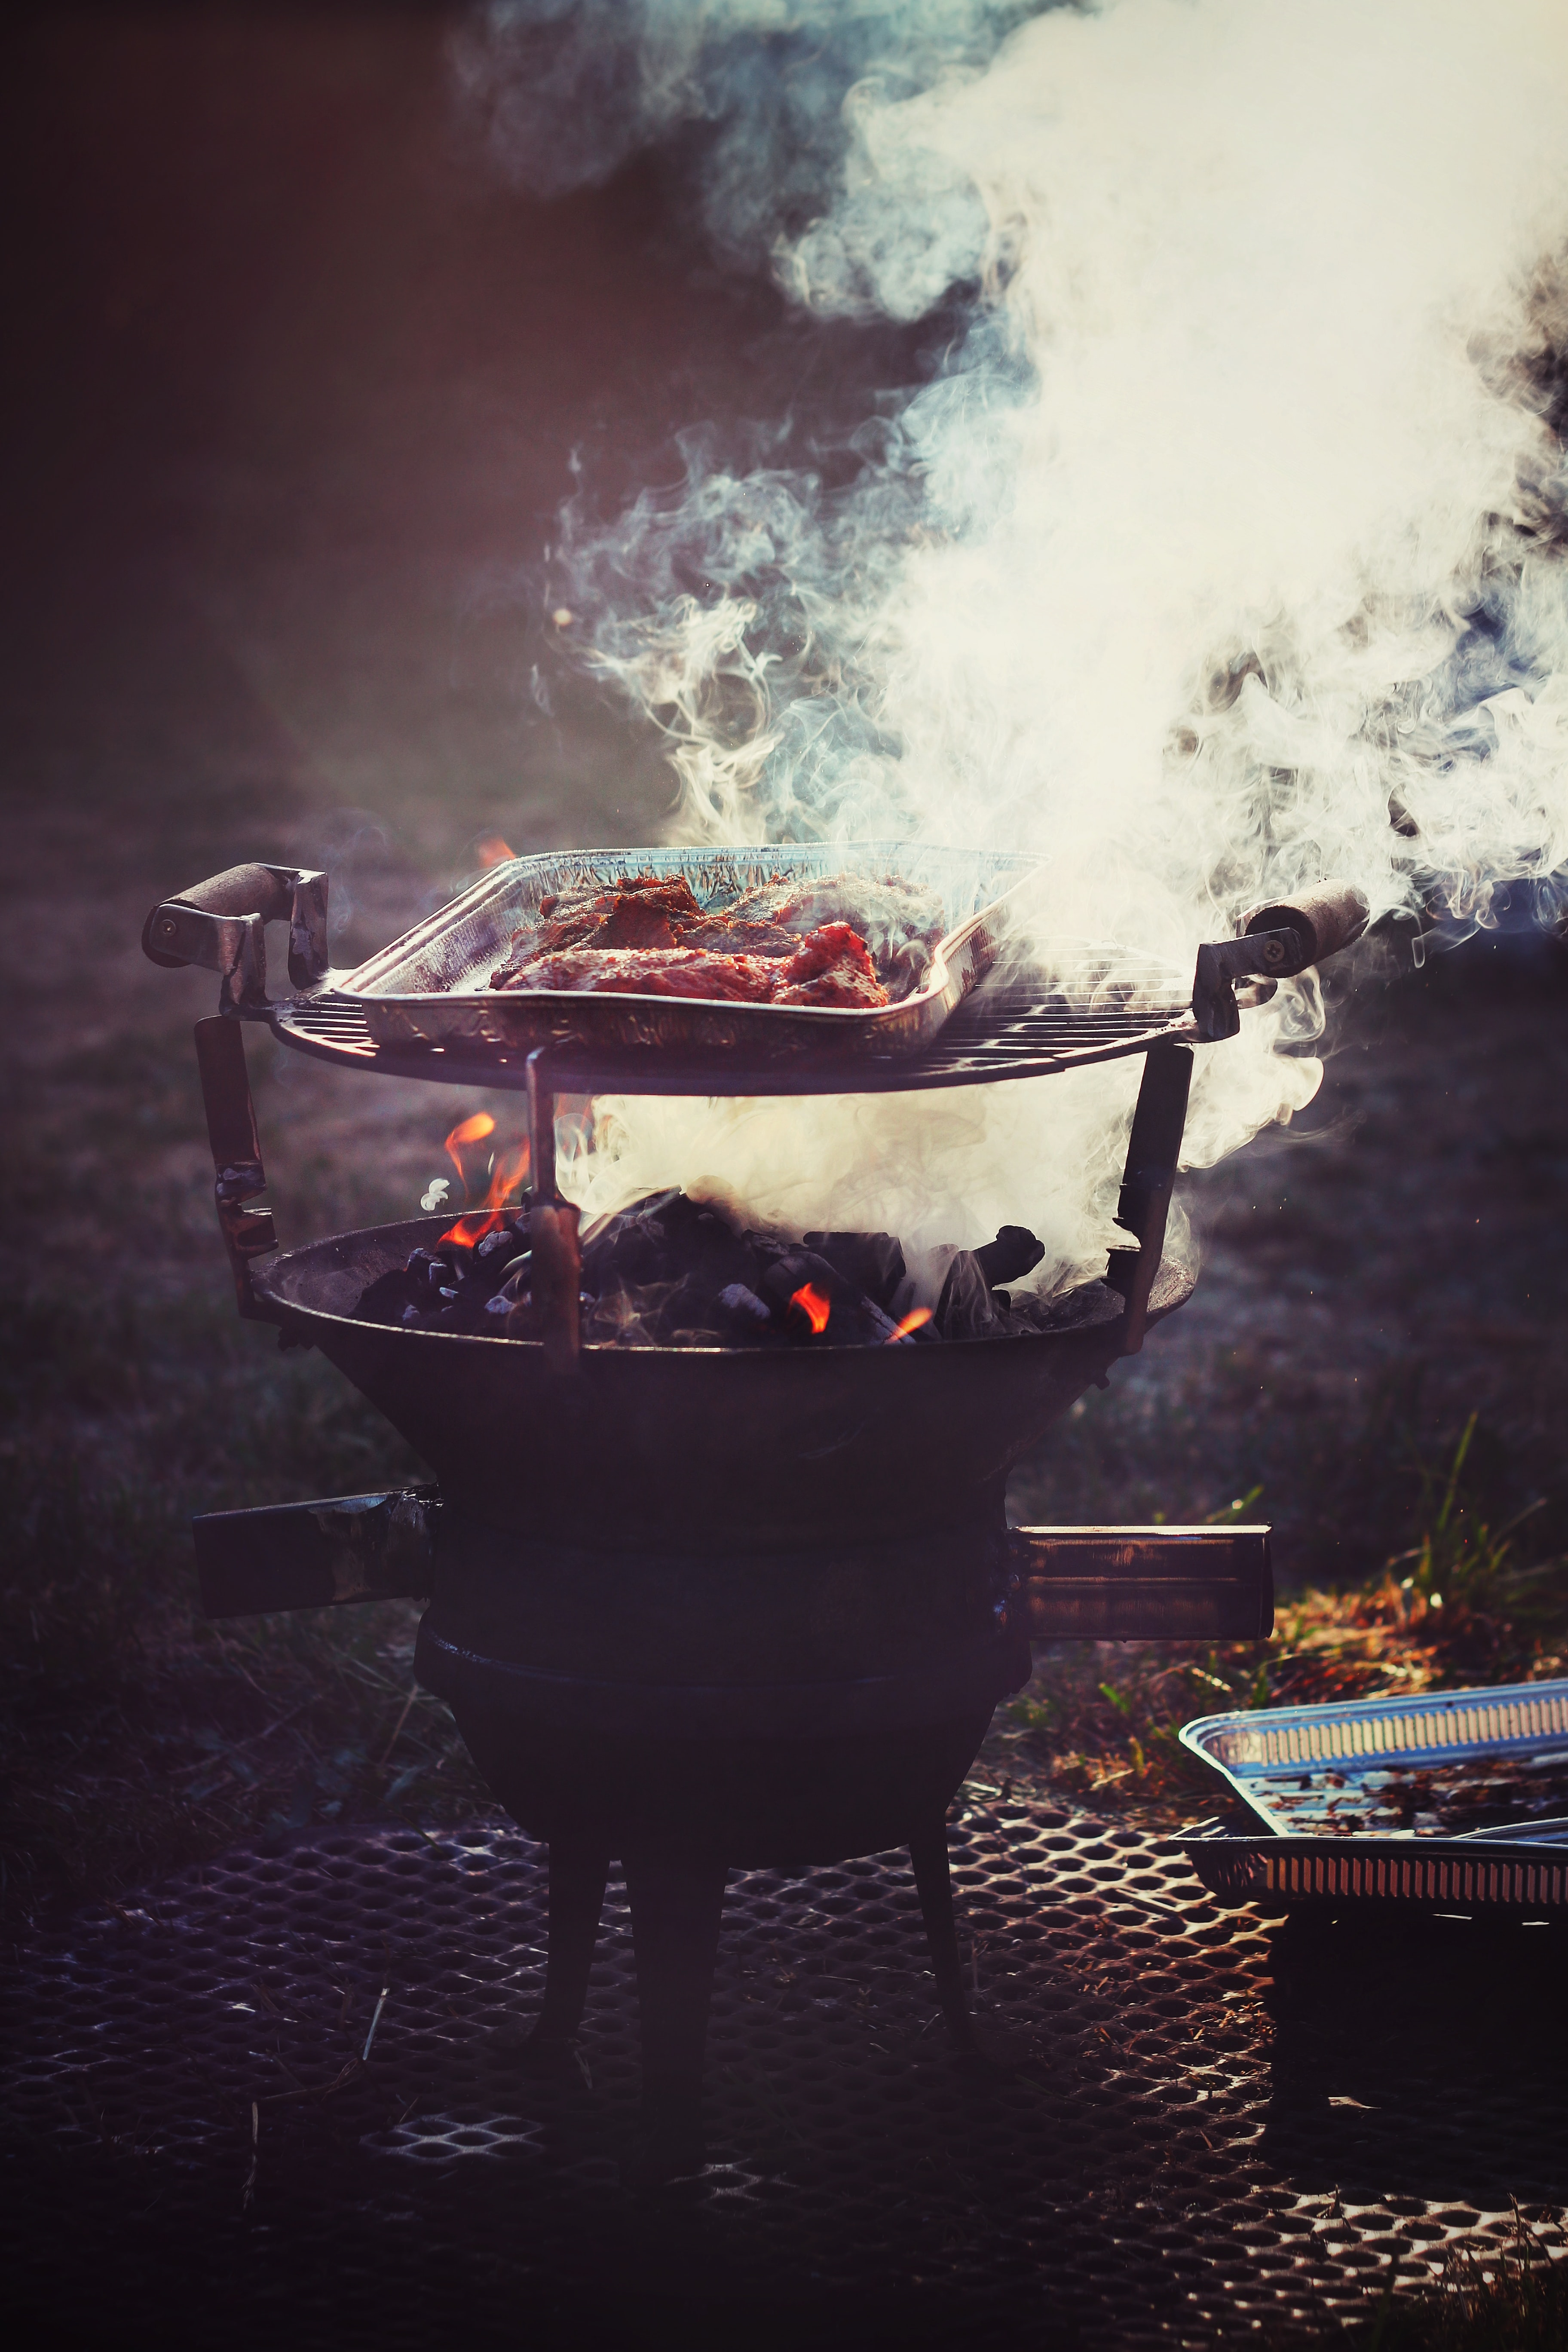 350 Bbq Images Hd Download Free Images On Unsplash